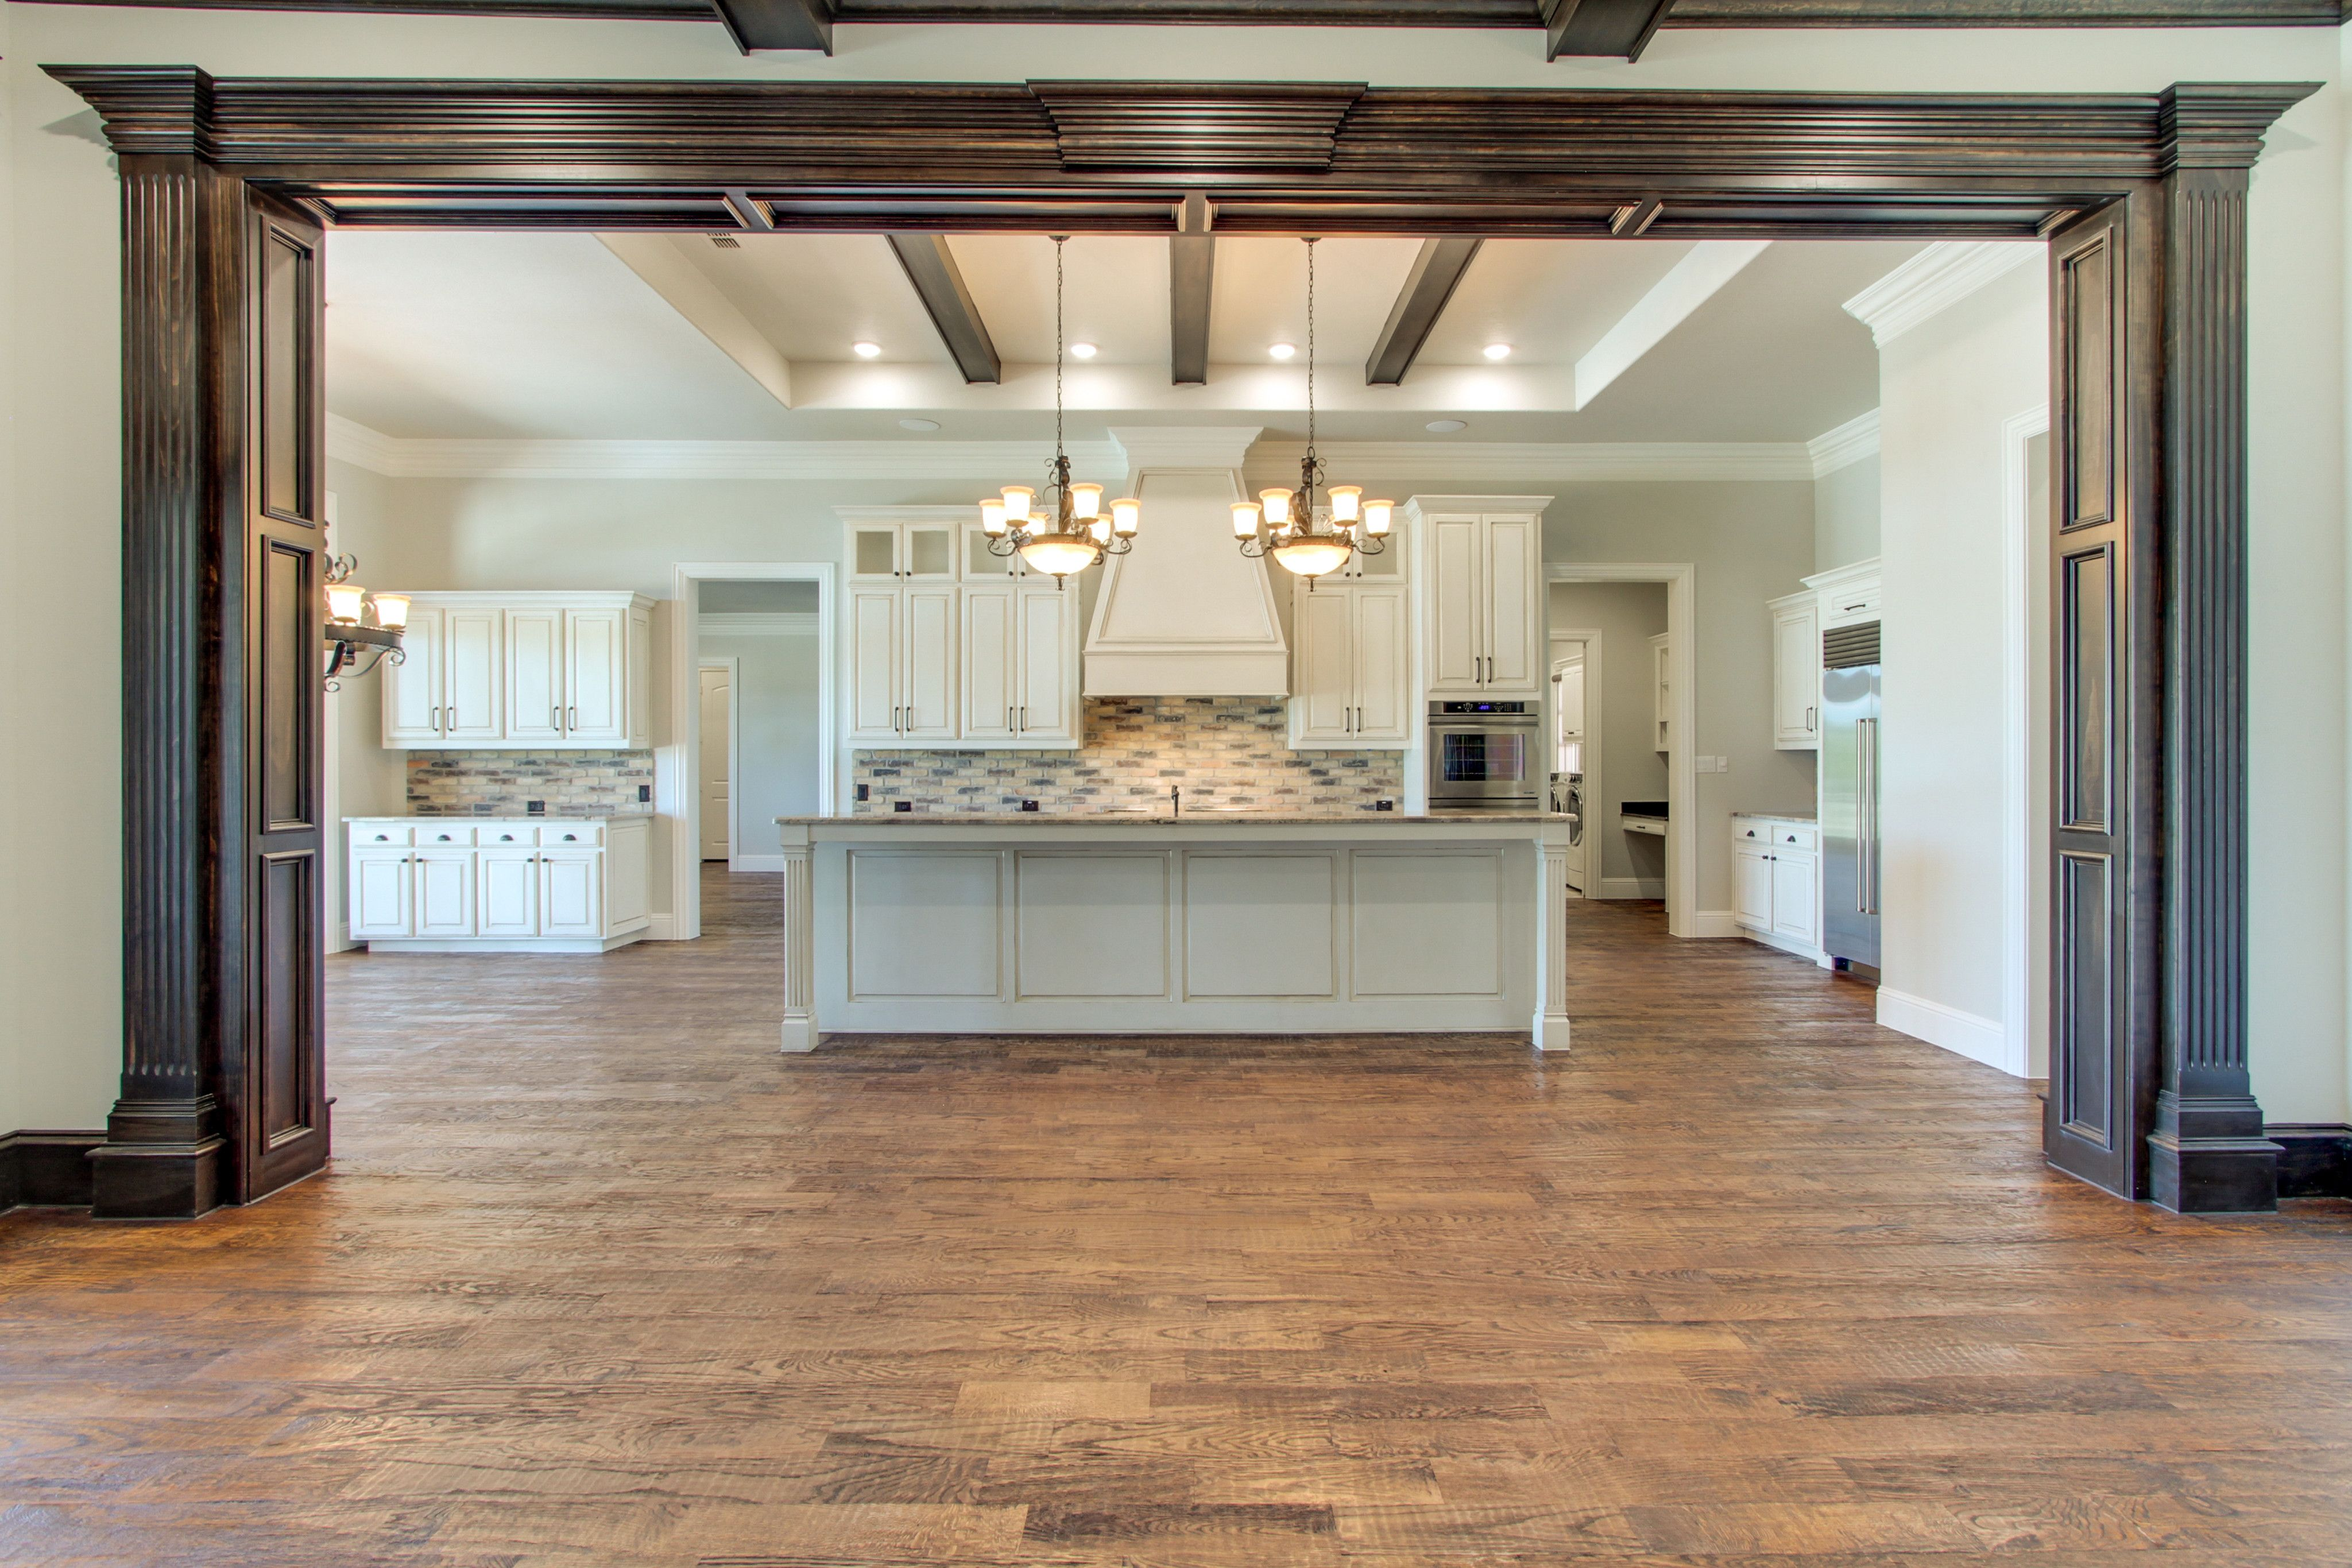 open plan blog downtown colorado gorgeous flooring of floor the nights warm immaculate perfect and deck properties tags laminate this are dream check for all denver overseas floors img homes those right which home summer out rooftop